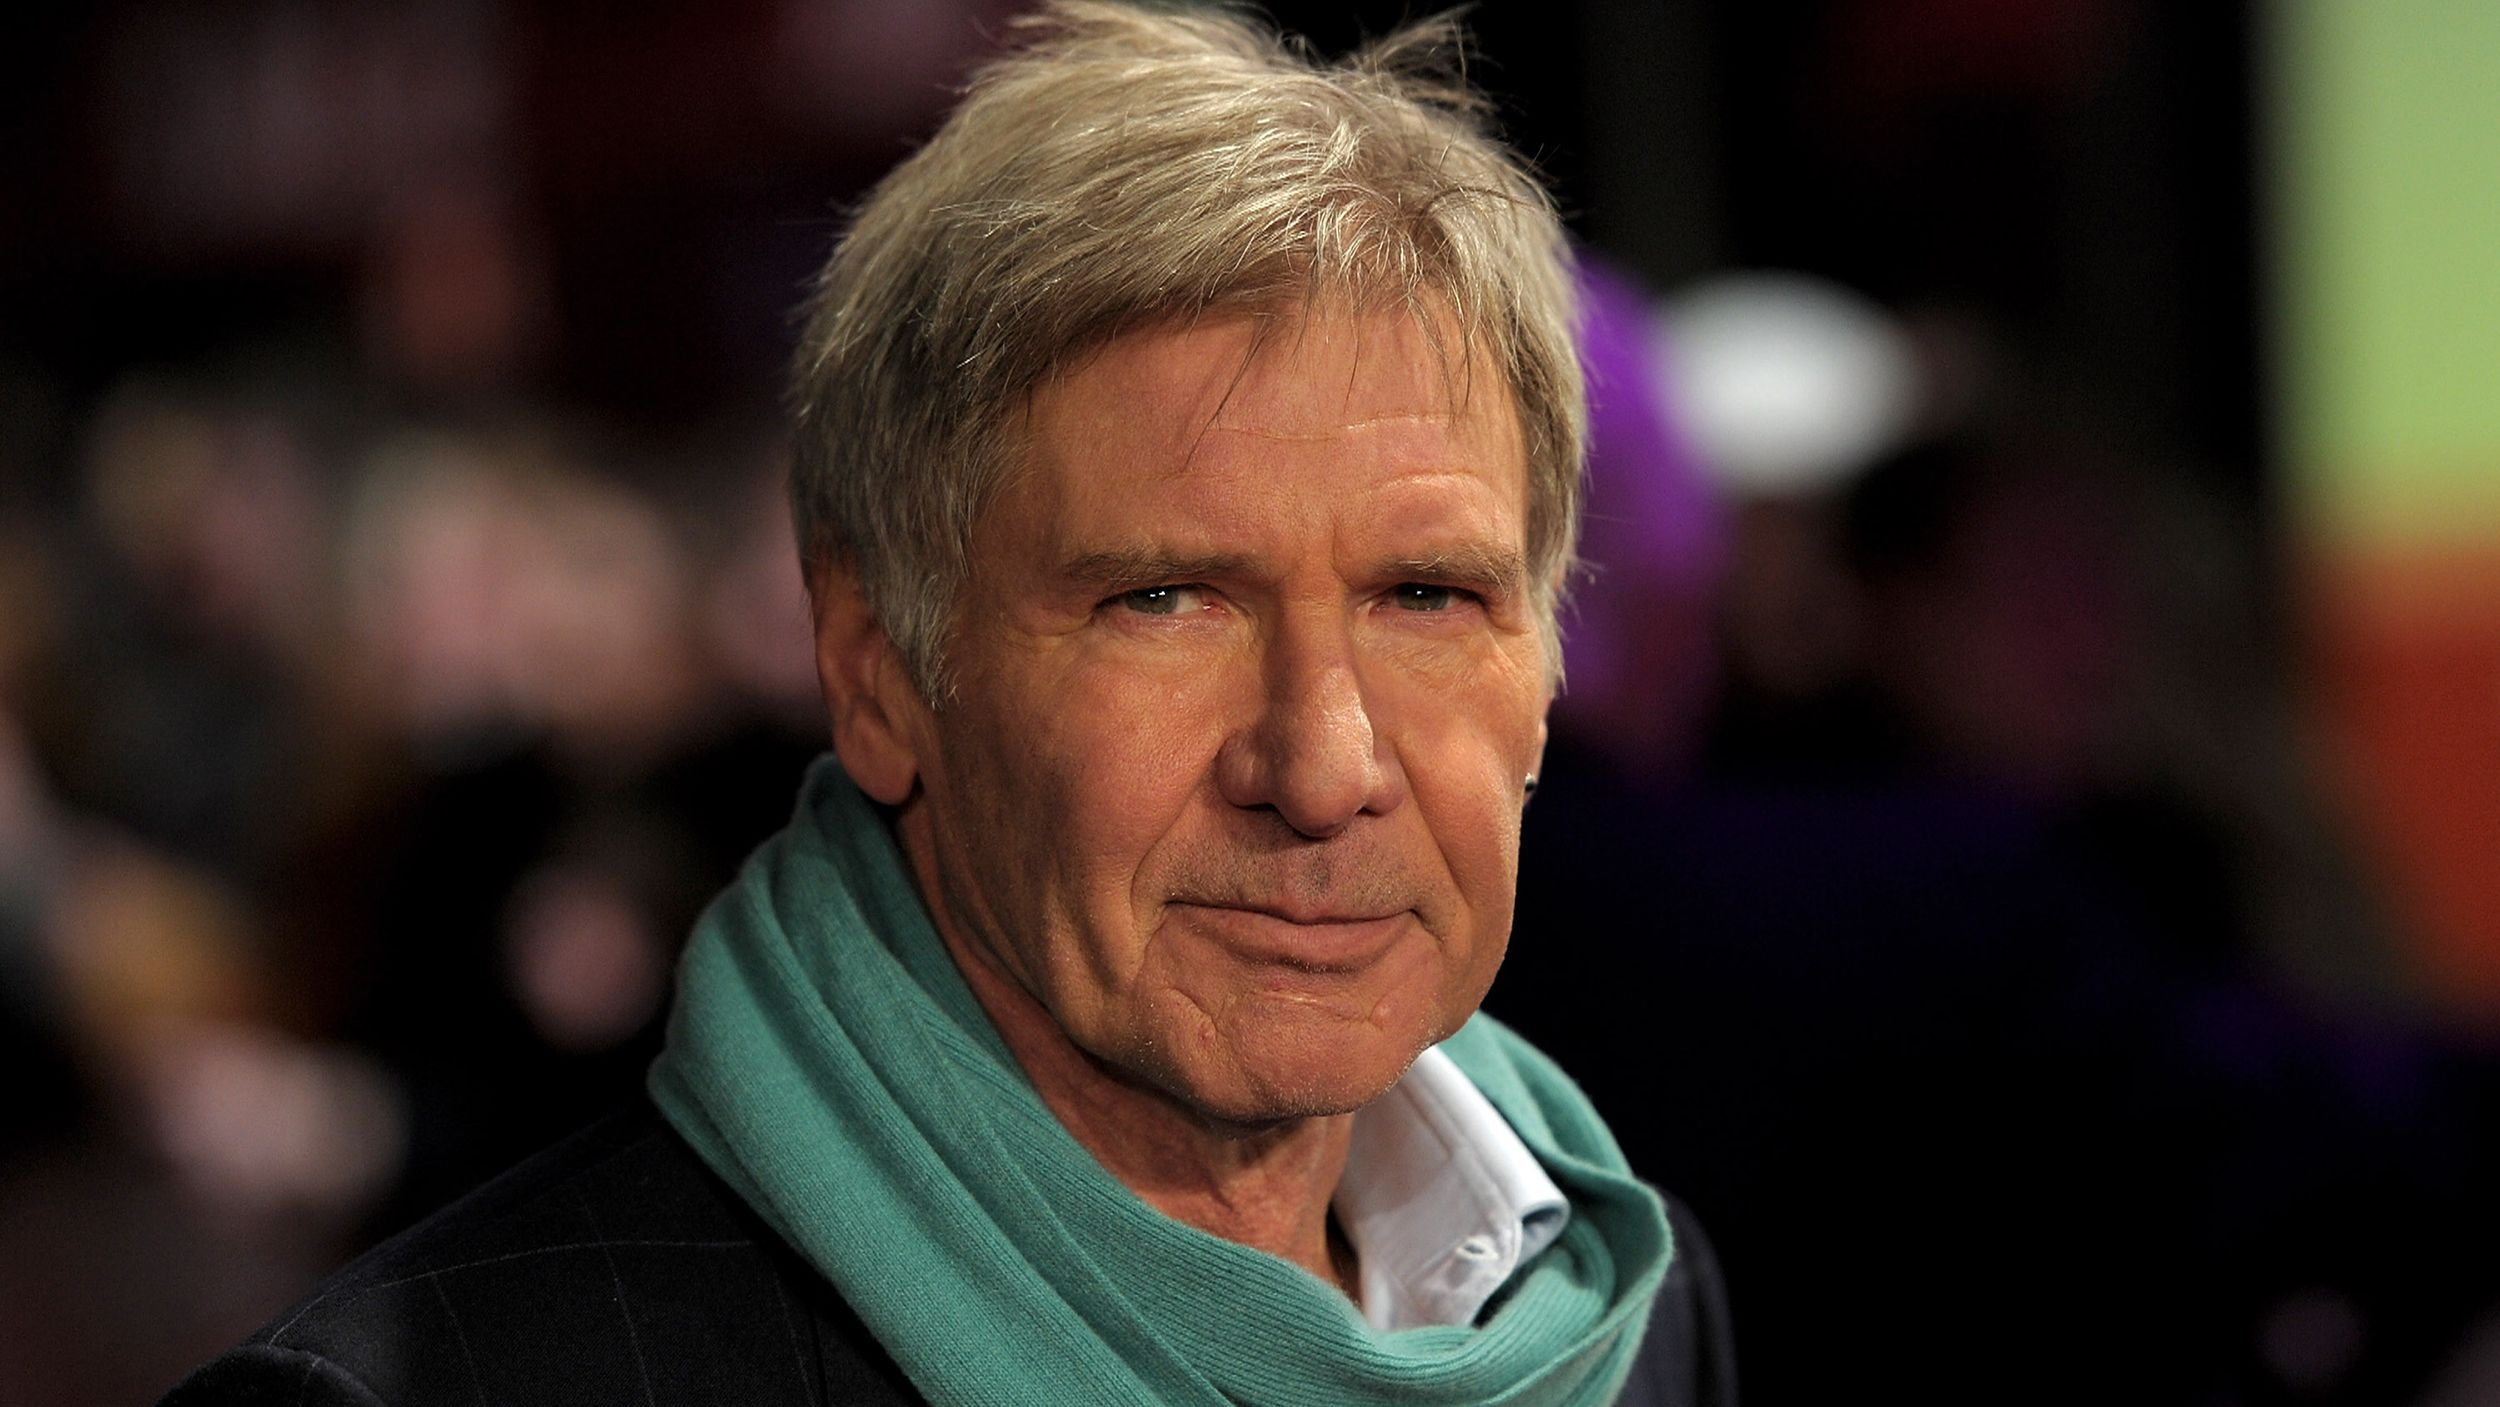 Celebrities Their Incredible Net Worth With Images Harrison Ford Harrison Ford